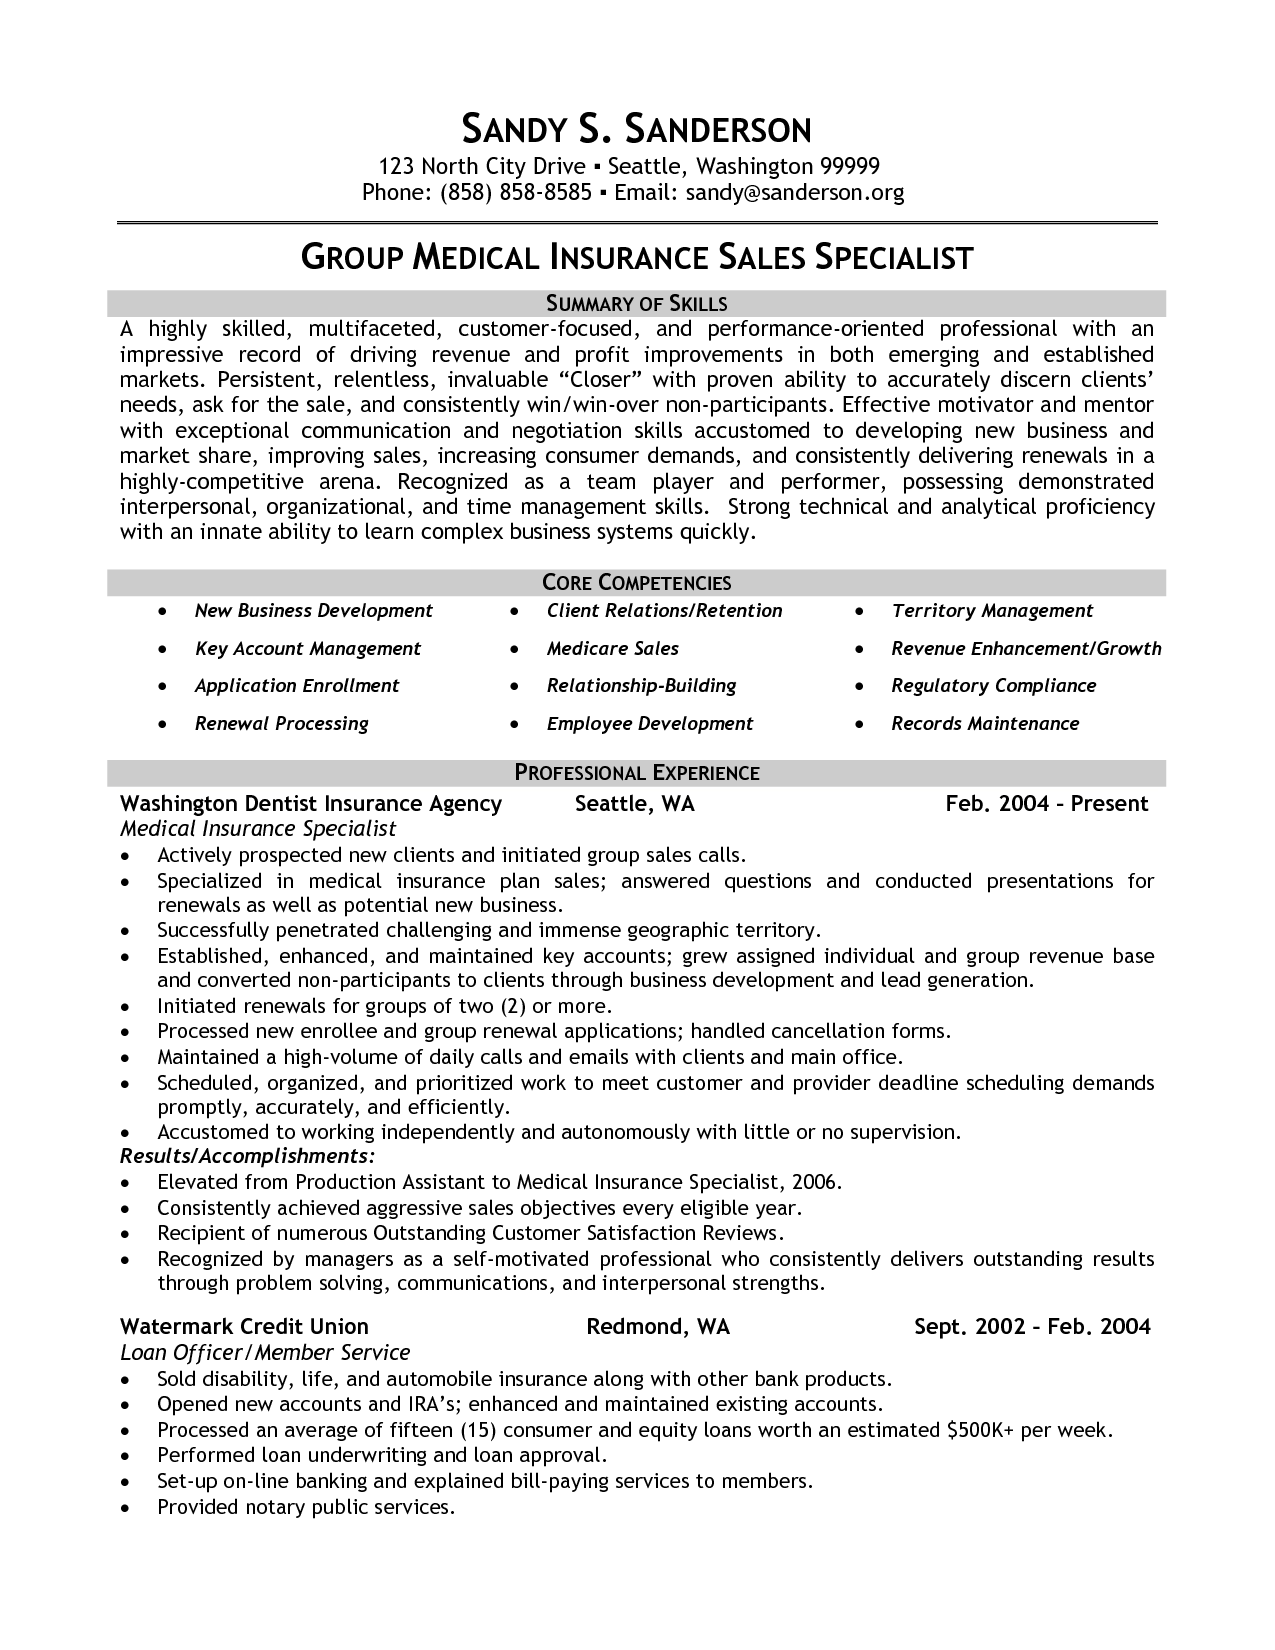 Js Auto Sales >> Insurance Specialist Resume Sample - SampleBusinessResume.com : SampleBusinessResume.com